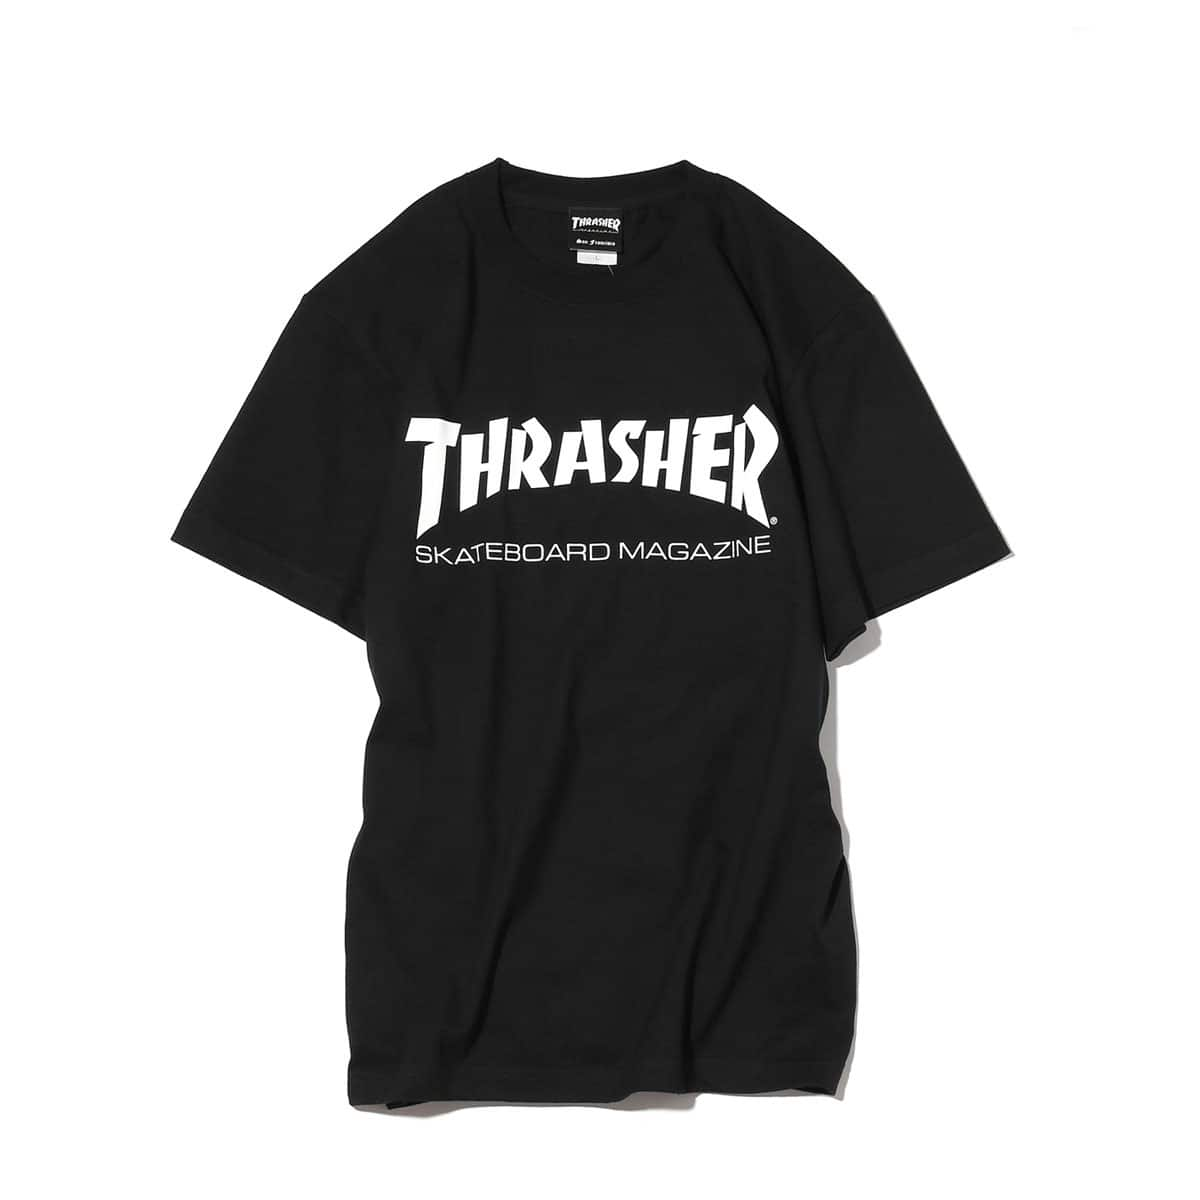 THRASHER MAG LOGO T-SHIRTWHITE/BLACK/RED 18FW-I_photo_large